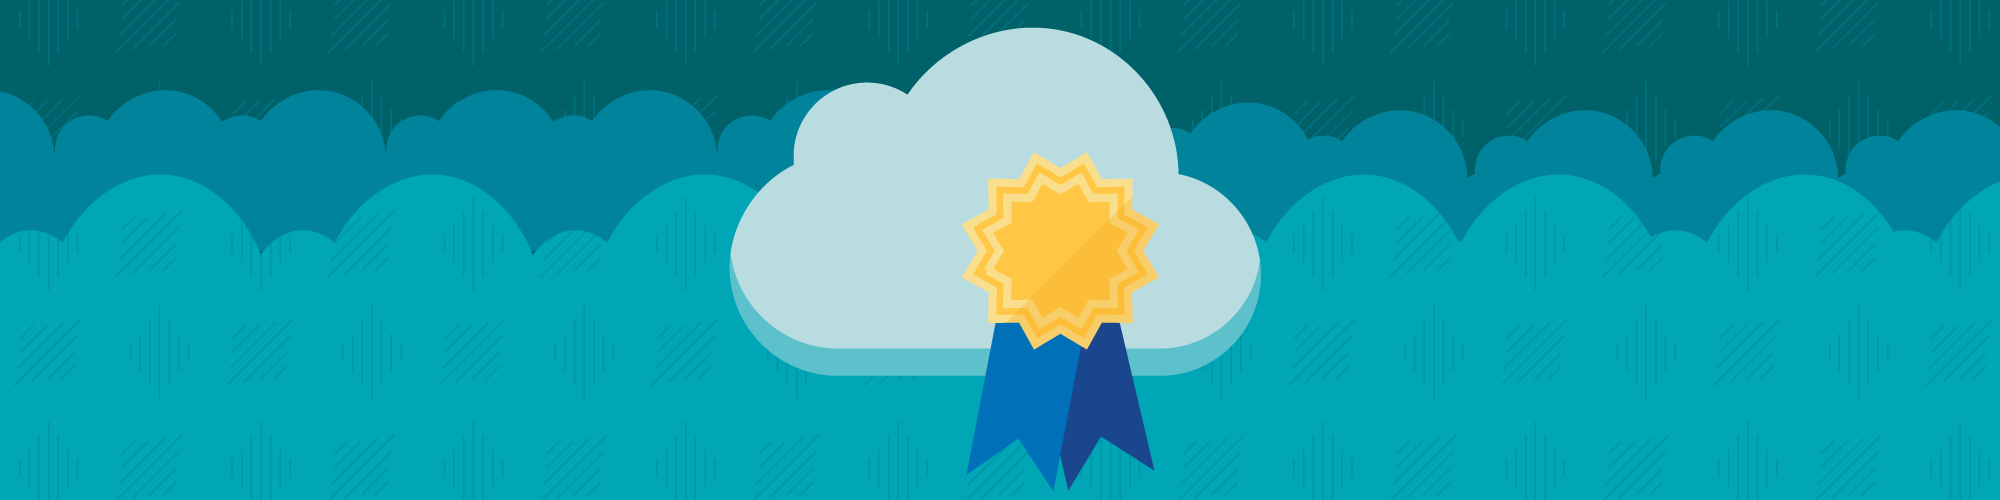 Nessus Receives CIS Certification for Amazon AWS Foundations Benchmark